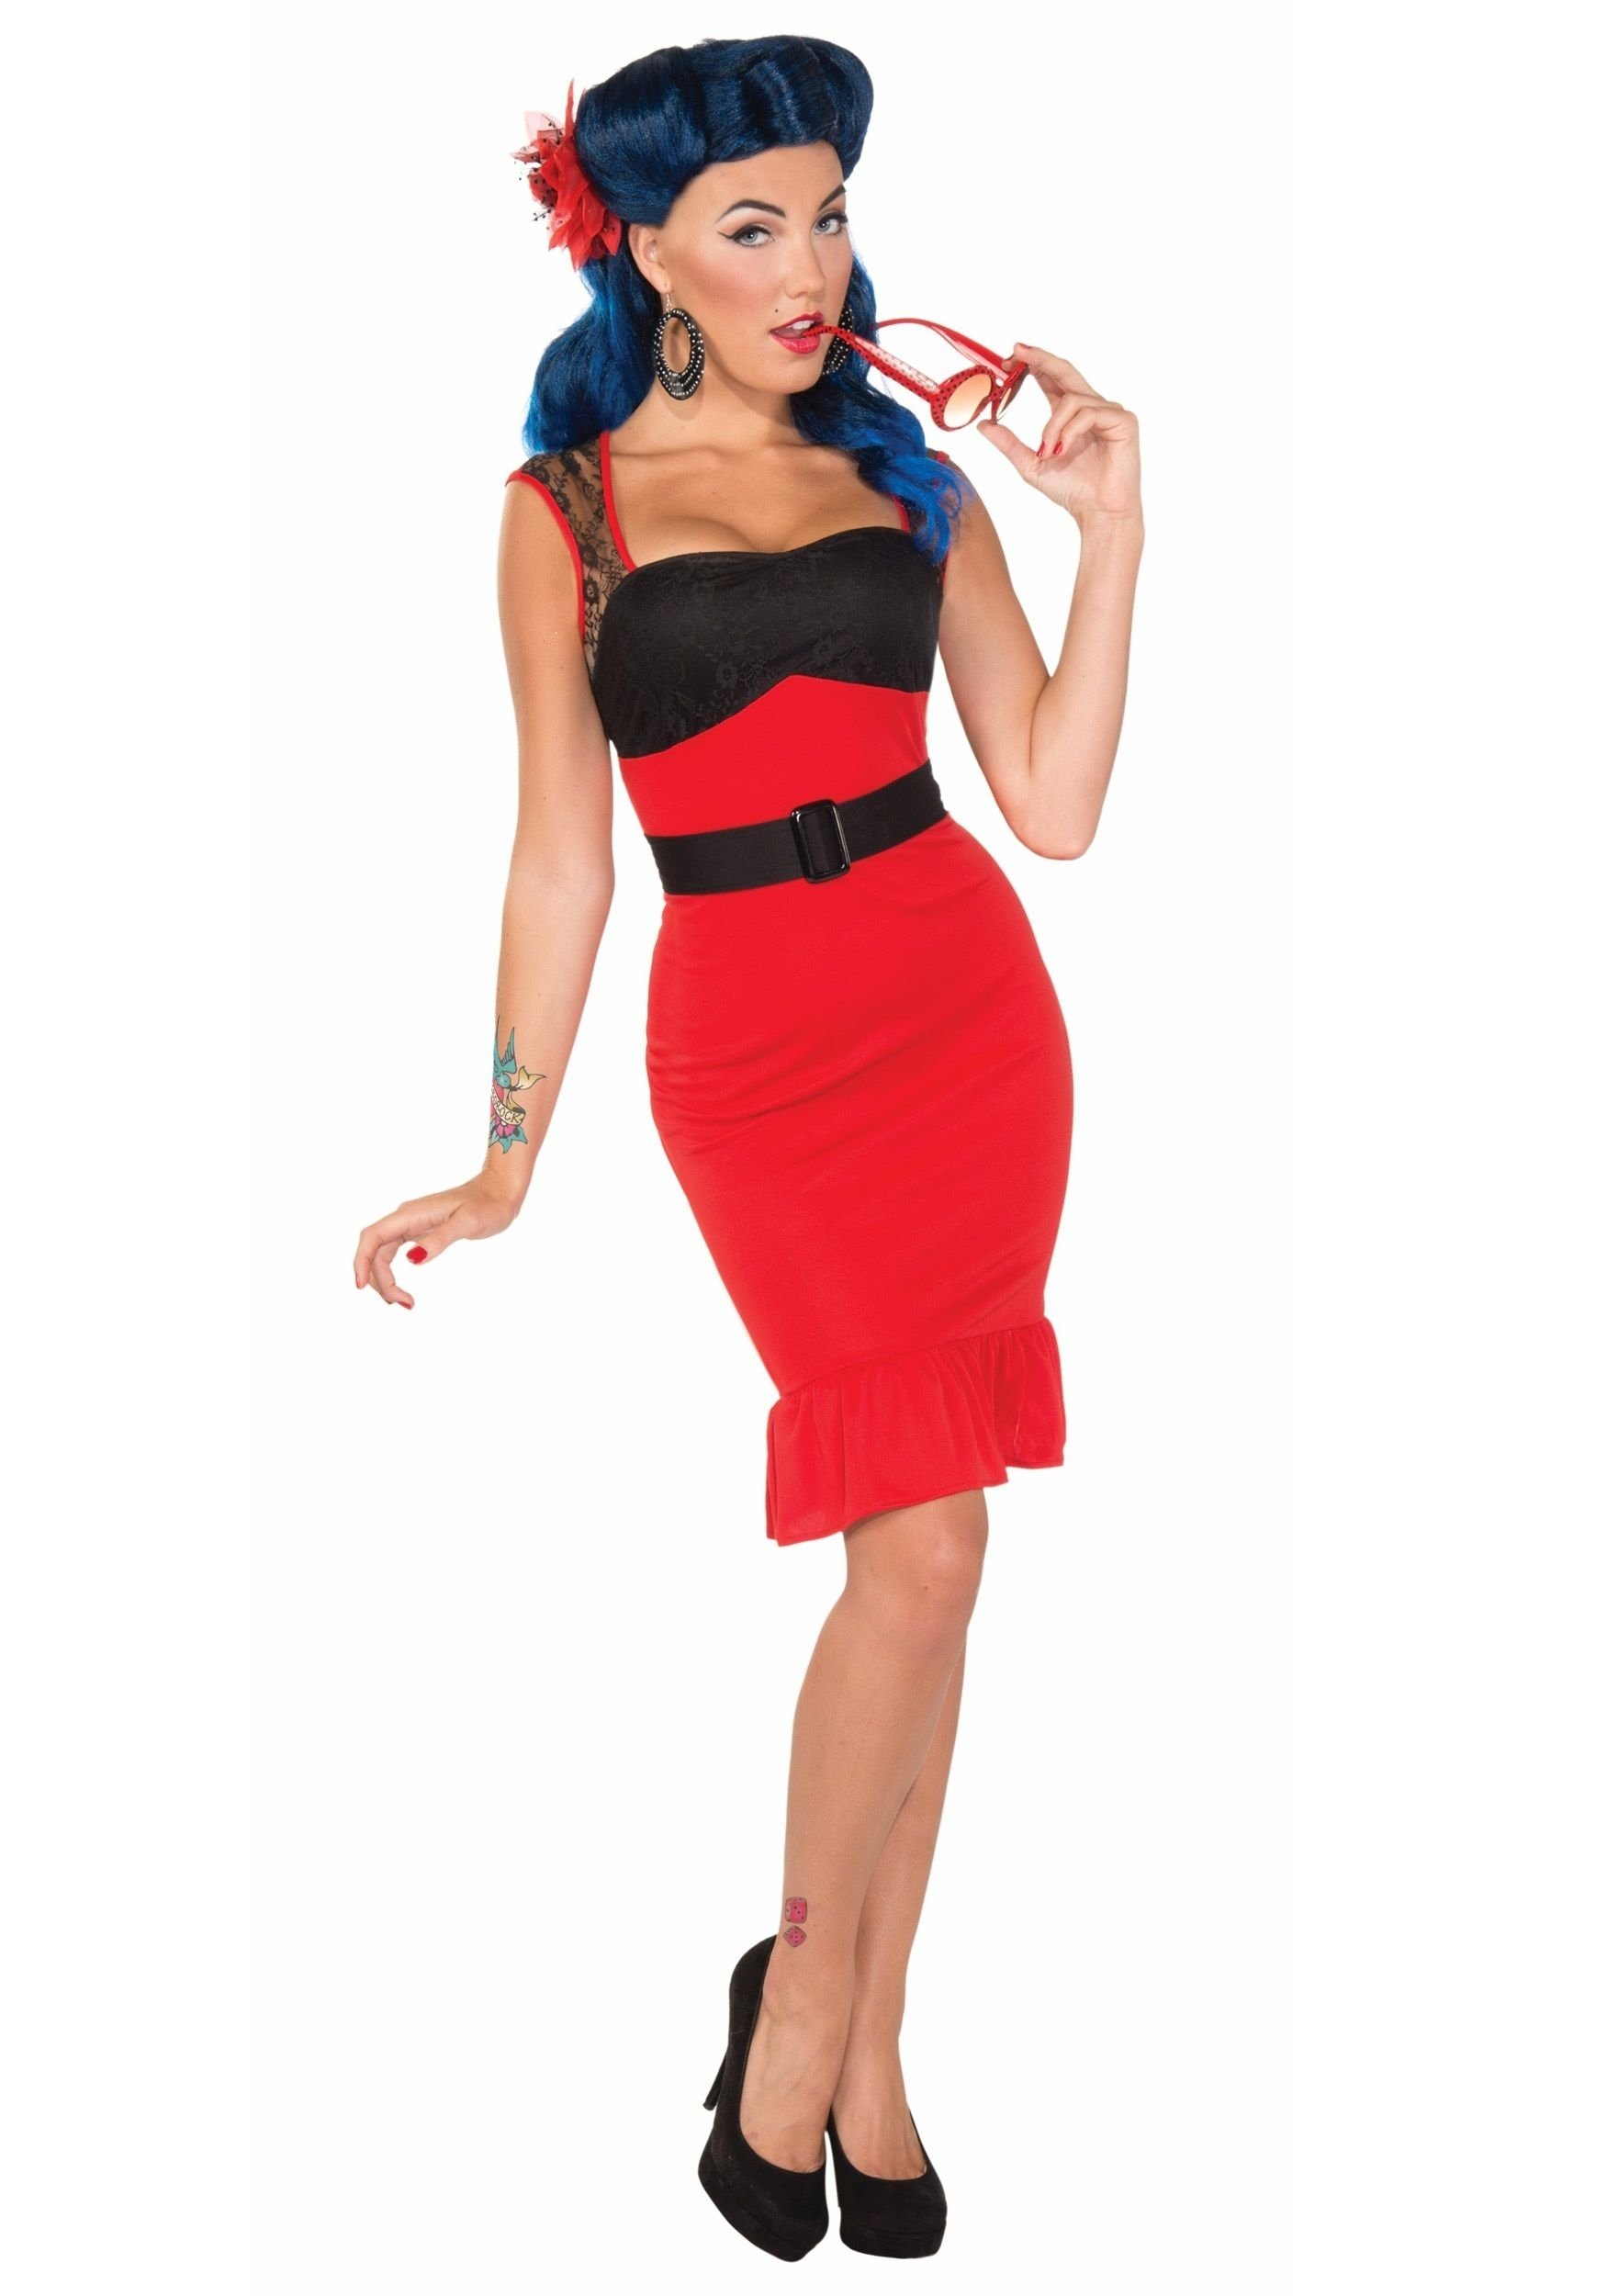 10 Famous Pin Up Girl Costumes Ideas scarlet rose rock a billy dress halloween costume ideas 2020